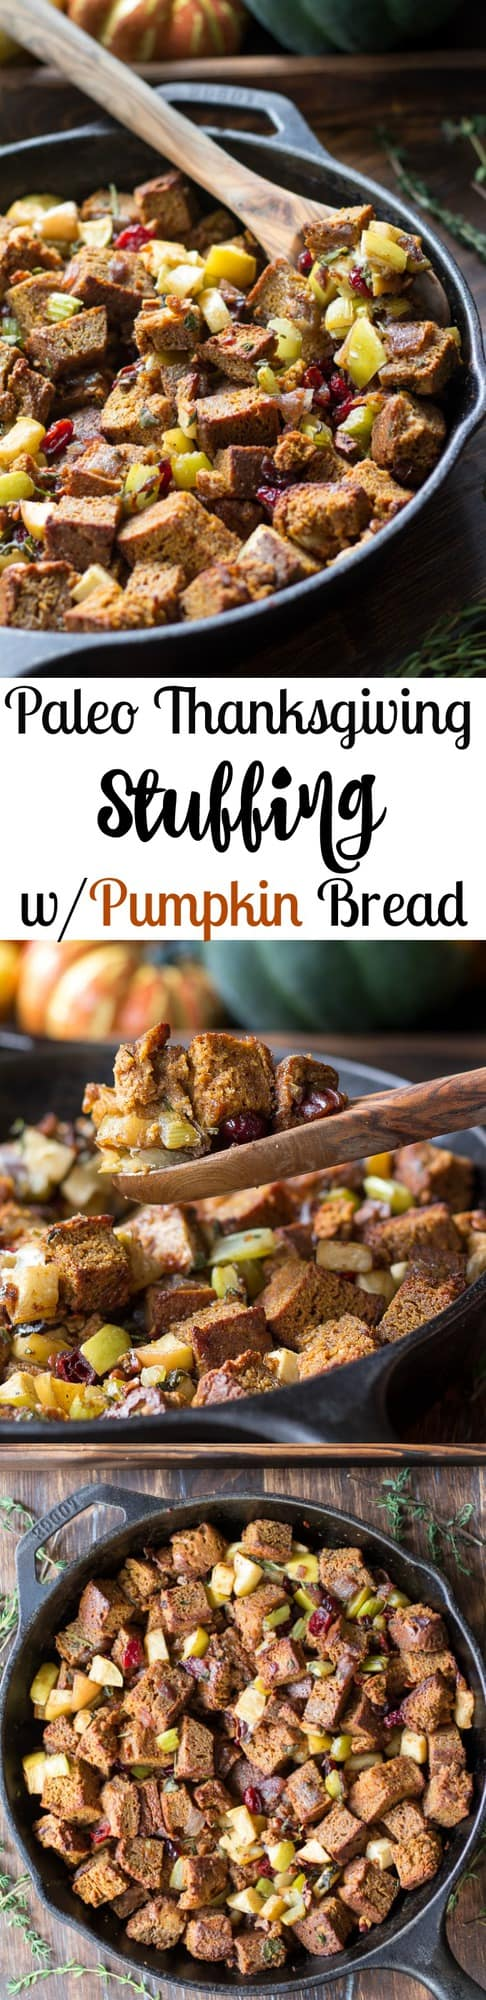 classic-homestyle-paleo-thanksgiving-stuffing-made-with-simple-pumpkin-bread-gluten-free-grain-free-dairy-free